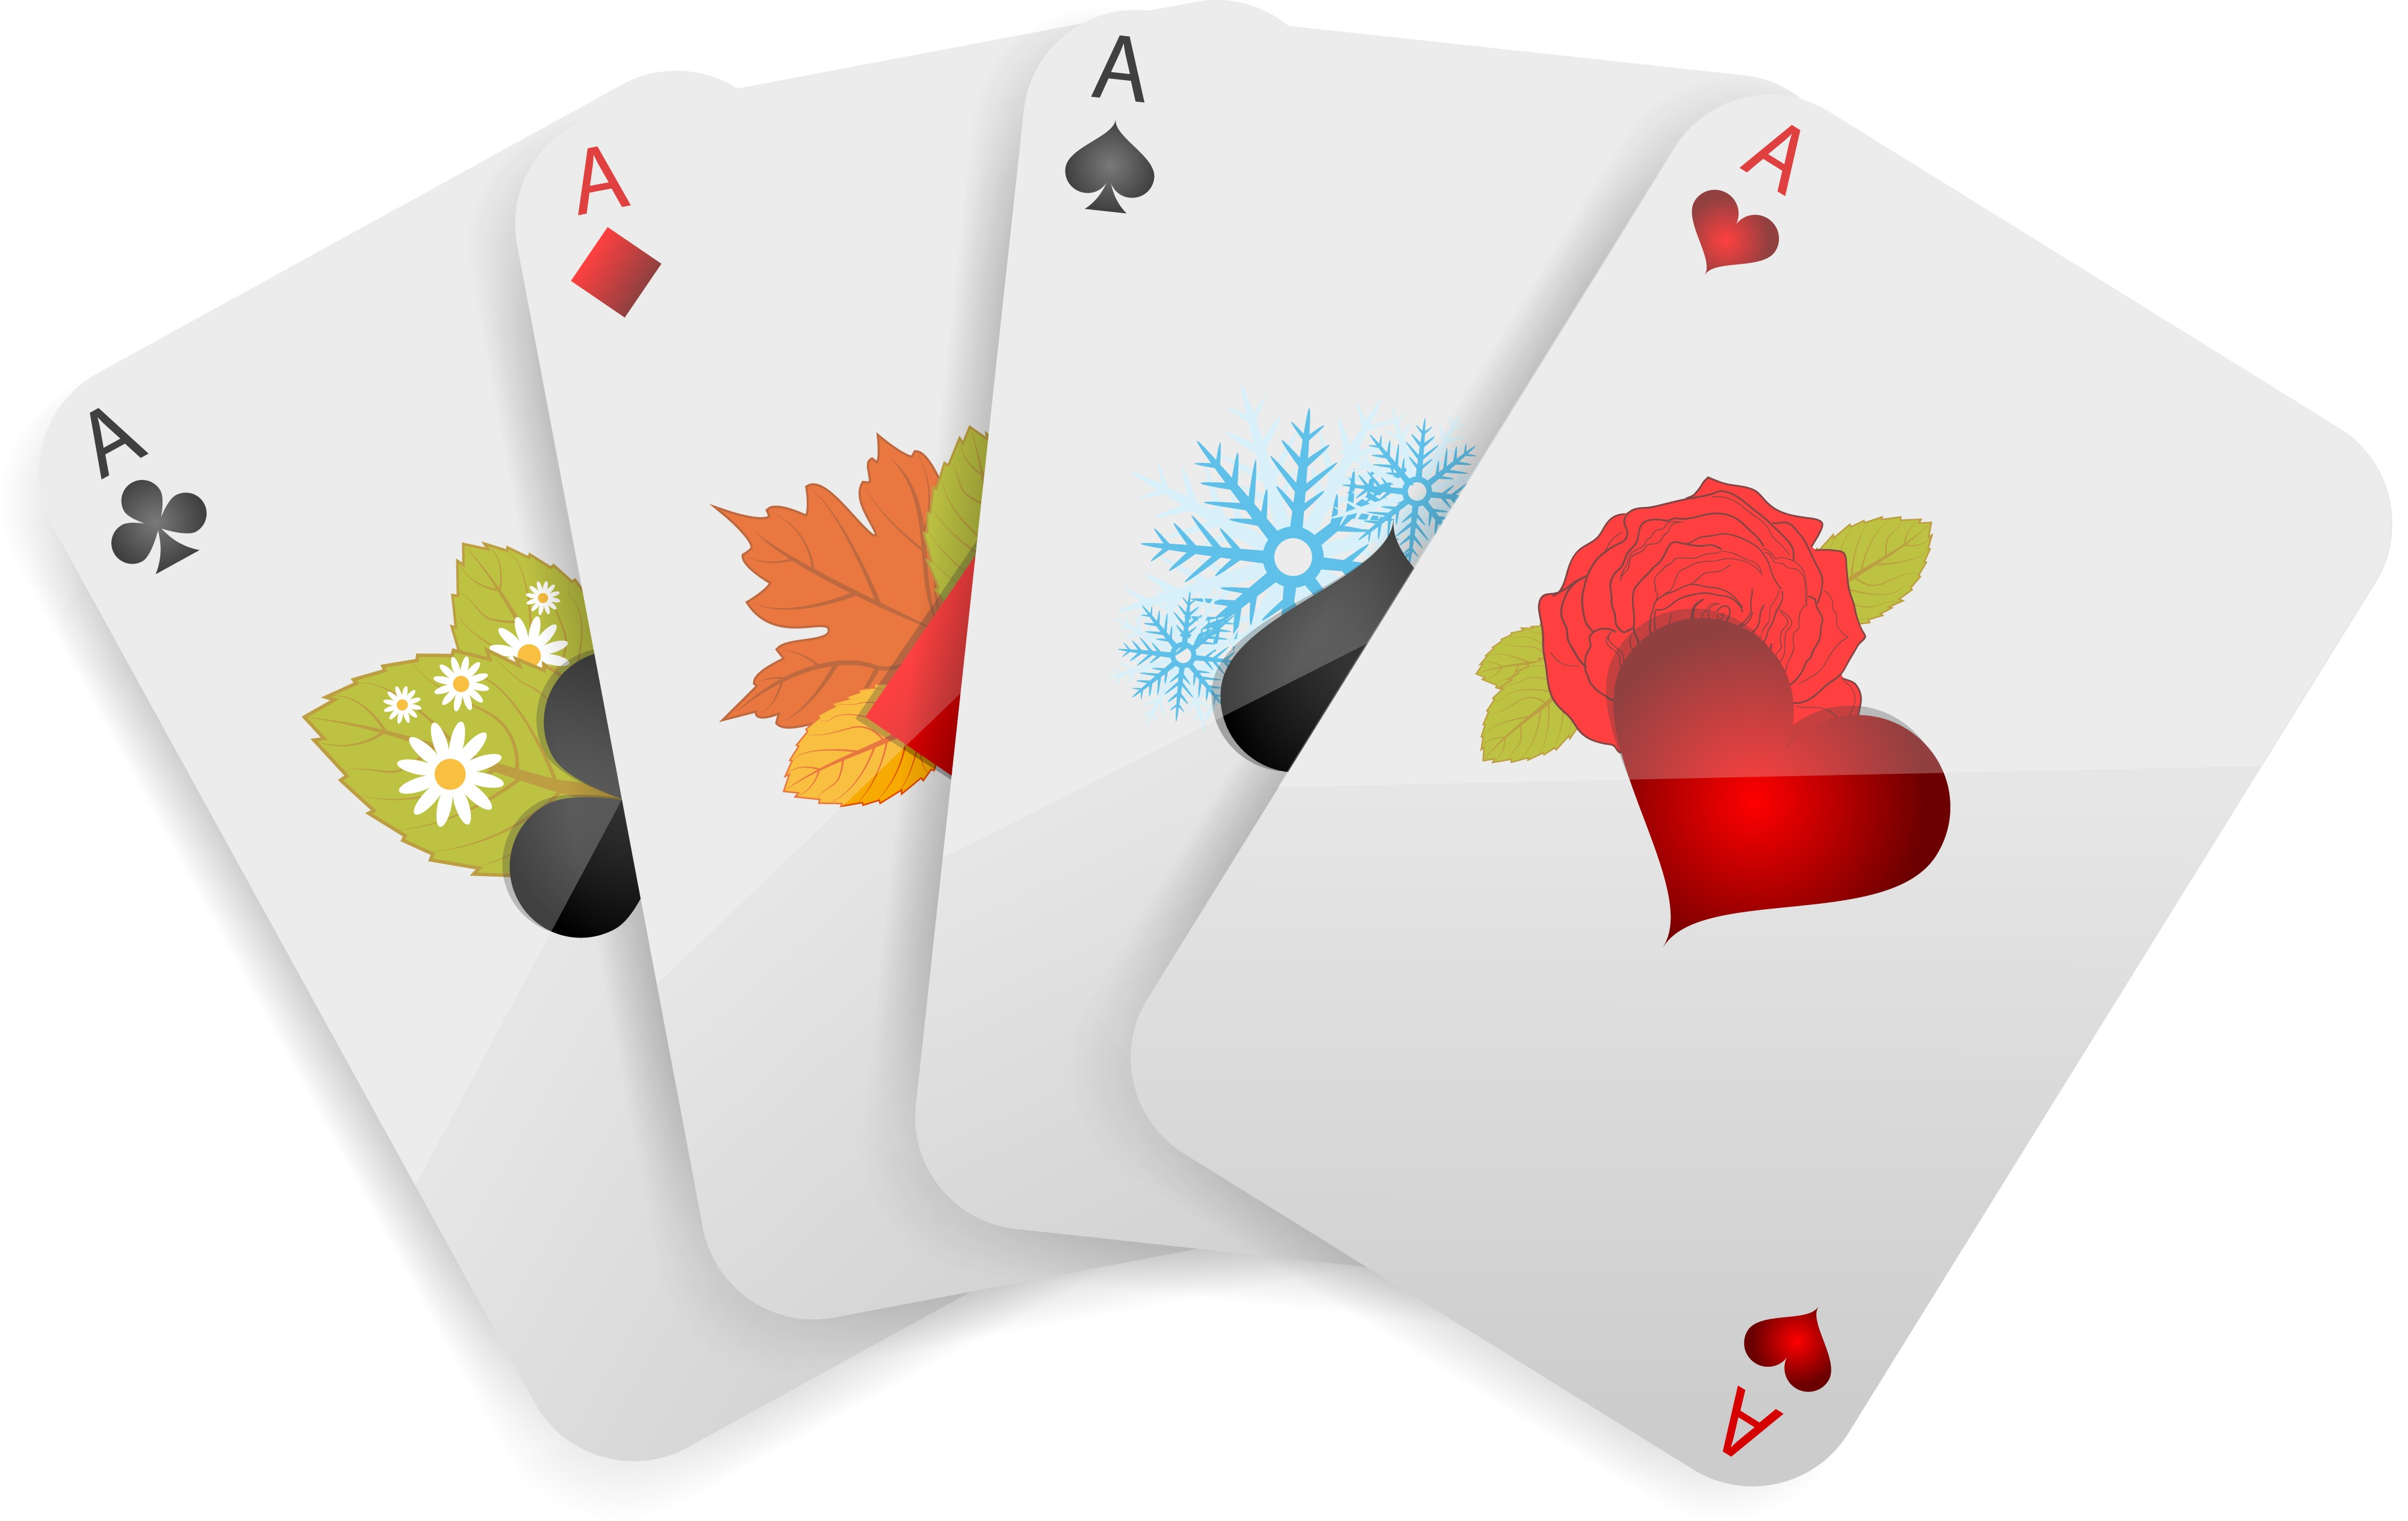 Four aces are decorated with seasonal foliage. The ace of clubs represents spring with fresh leaves and white flowers. The ace of diamonds represents autumn with a grouping of leaves in green, orange, yellow, and red. The ace of spades represents winter with icy blue snowflakes. The ace of hearts represents summer with a red rose.